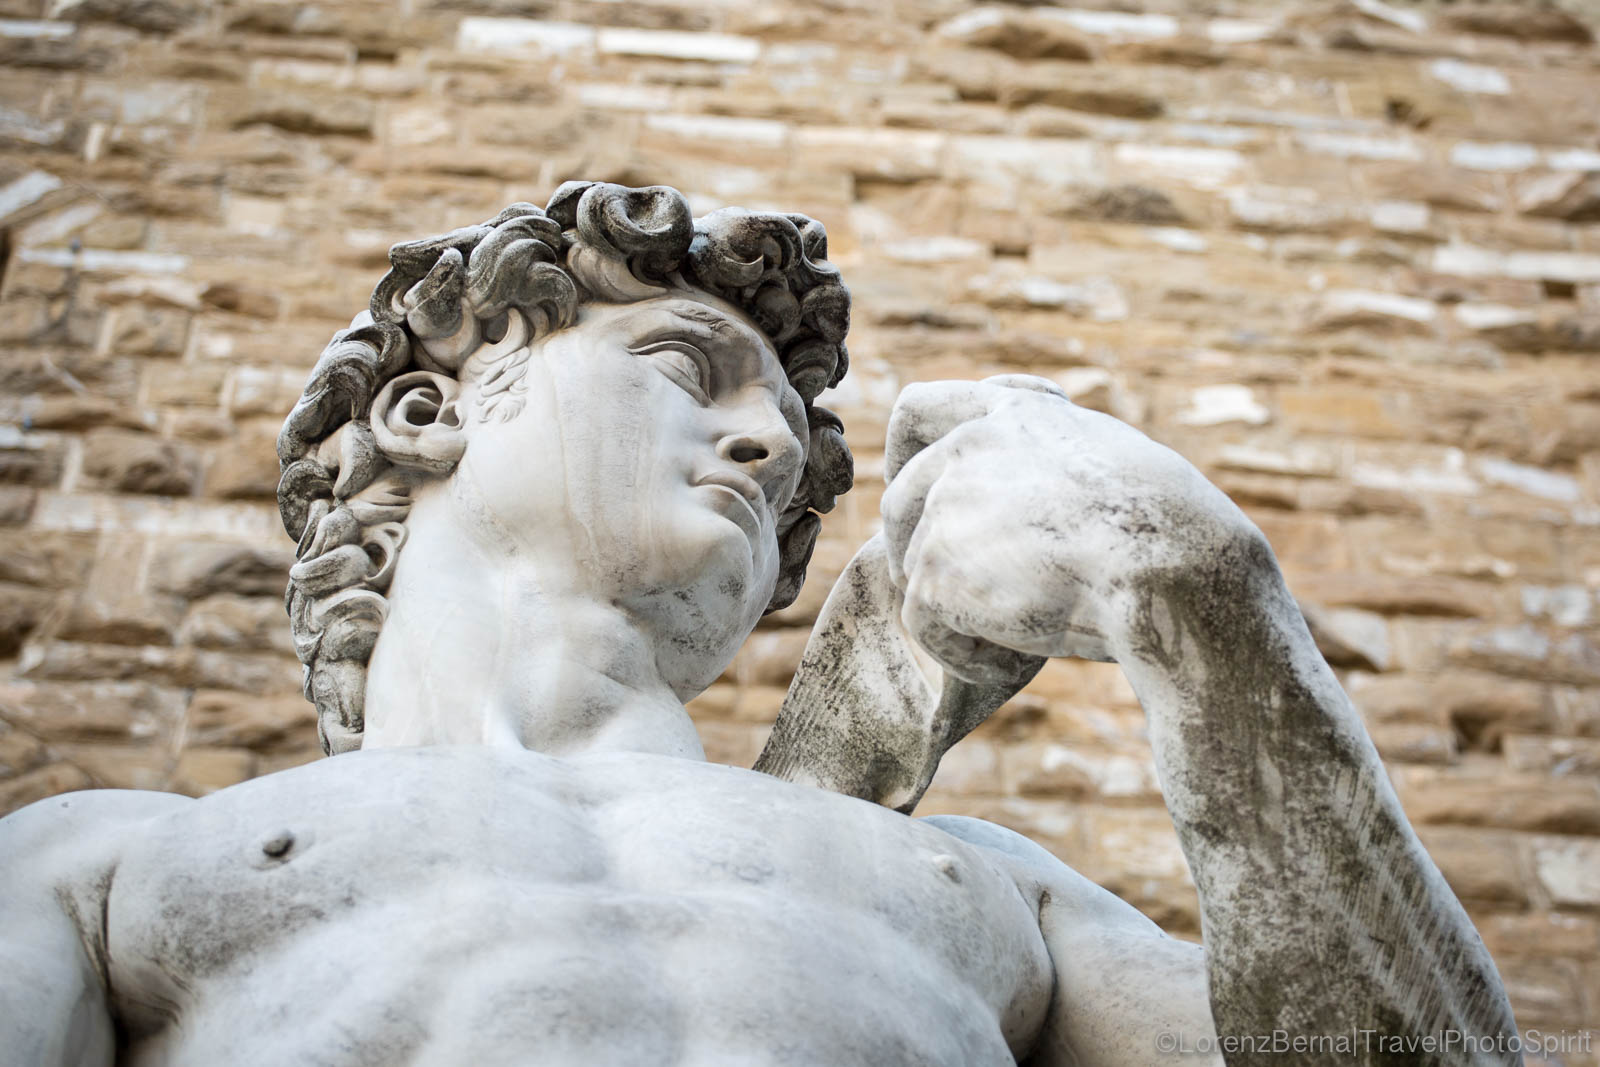 Detail of the David, marble sculpture from Michelangelo, located on the Piazza della SIgnoria in front of the Palazzo Vecchio, Florence, Tuscany, Italy.